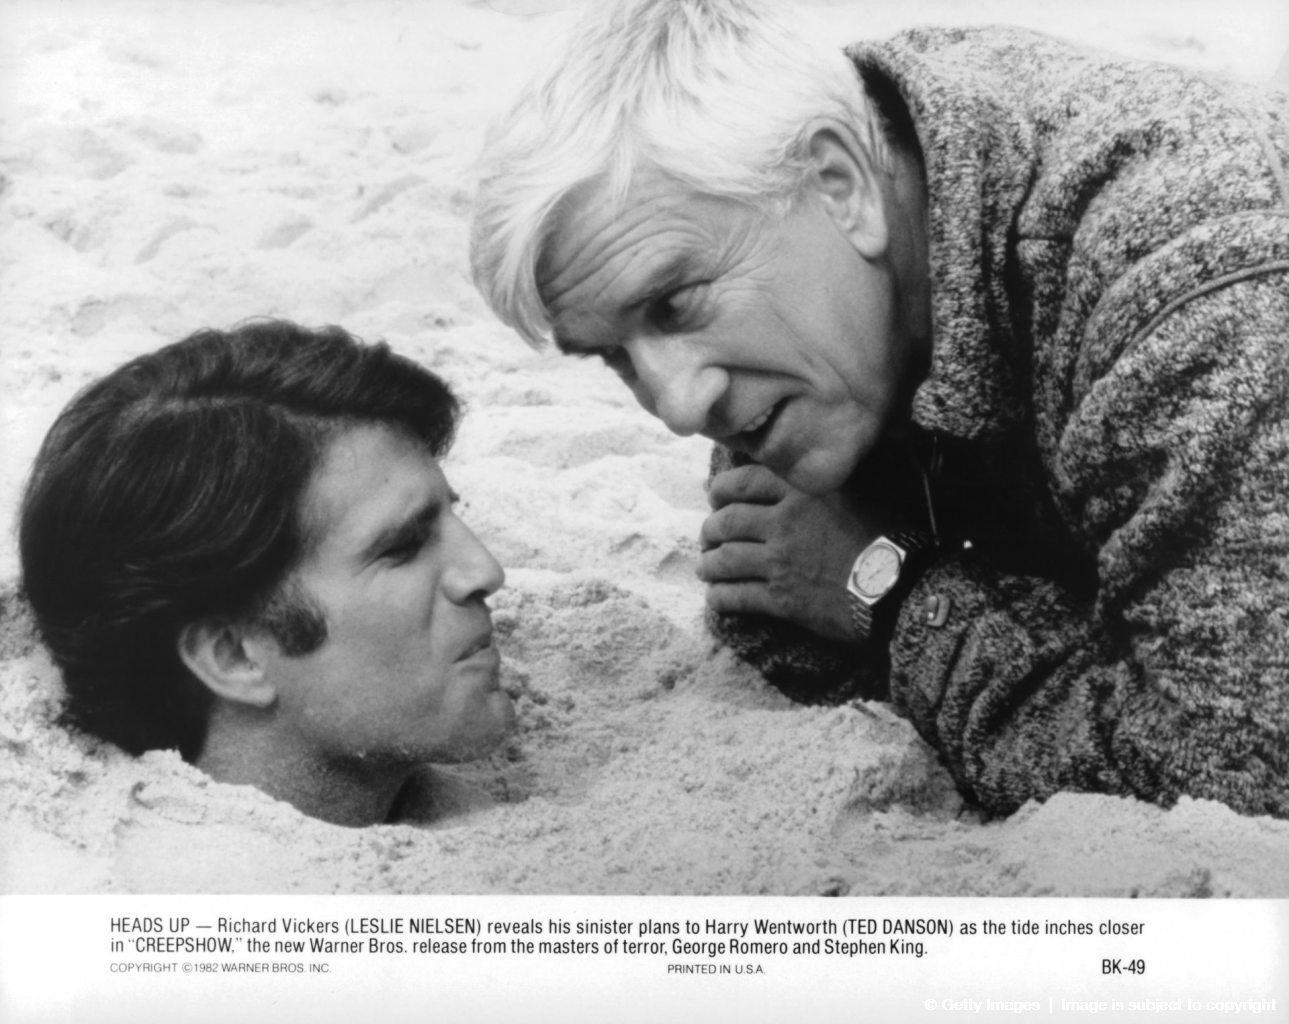 Ted Danson And Leslie Nielsen In 'Creepshow'